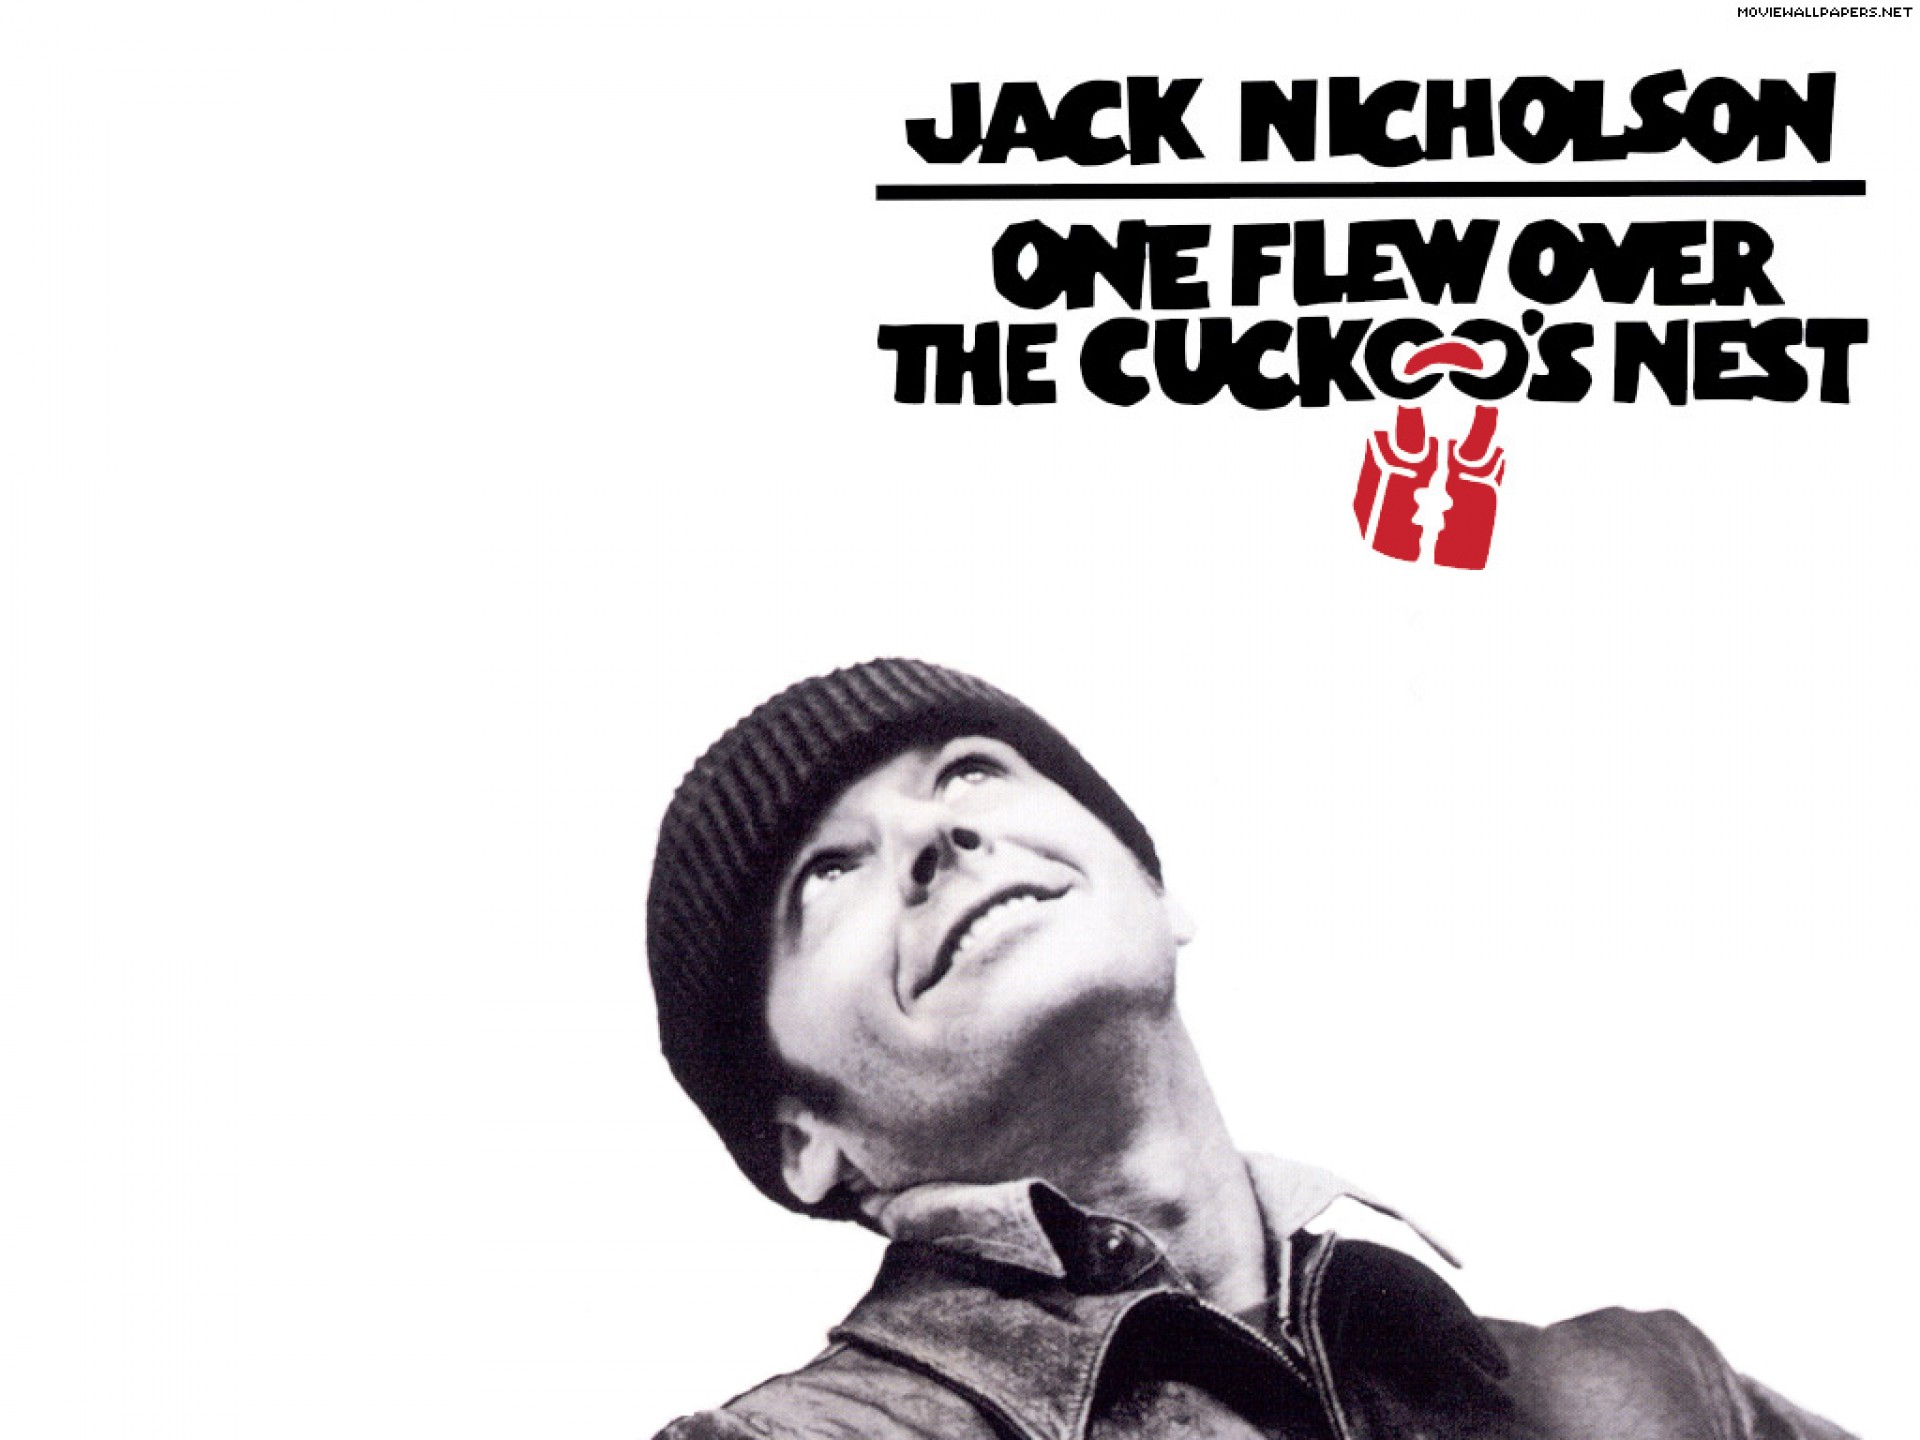 005 Essay Example One Flew Over The Cuckoos Nest Movie Wonderful Cuckoo's Prompts Writing Analysis Questions 1920